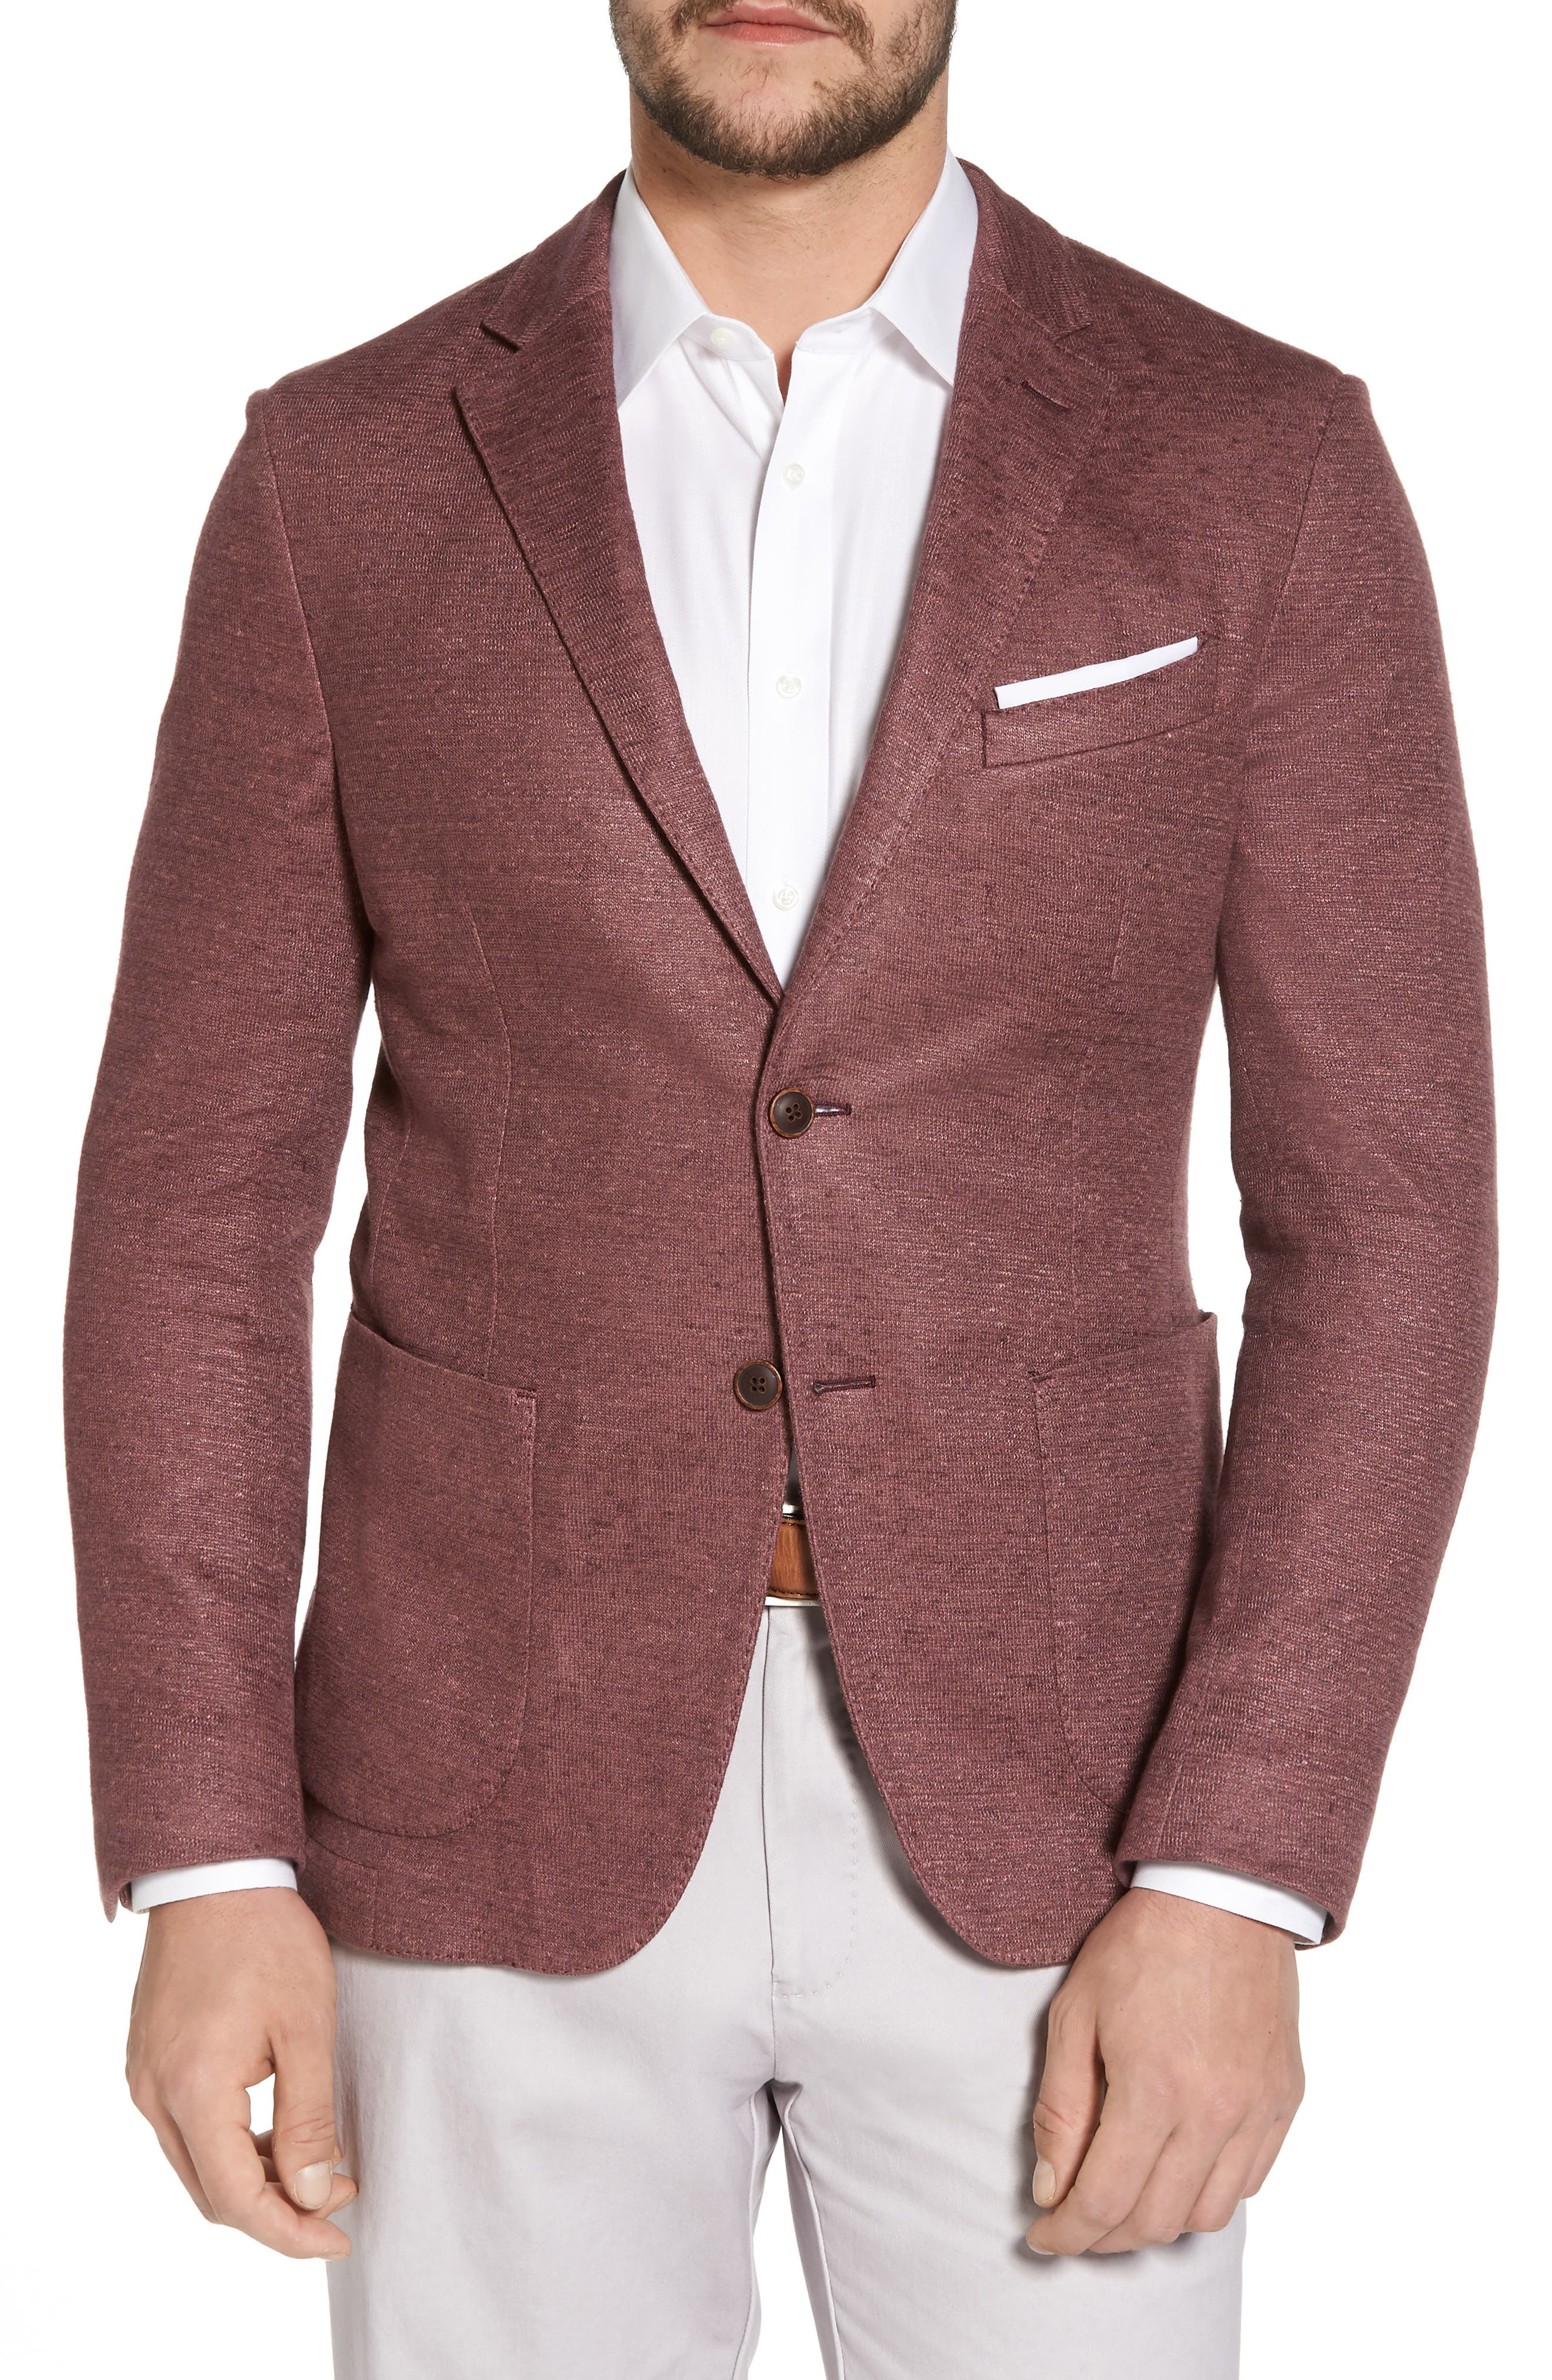 Trim Fit Heathered Jersey Blazer,                             Main thumbnail 1, color,                             651